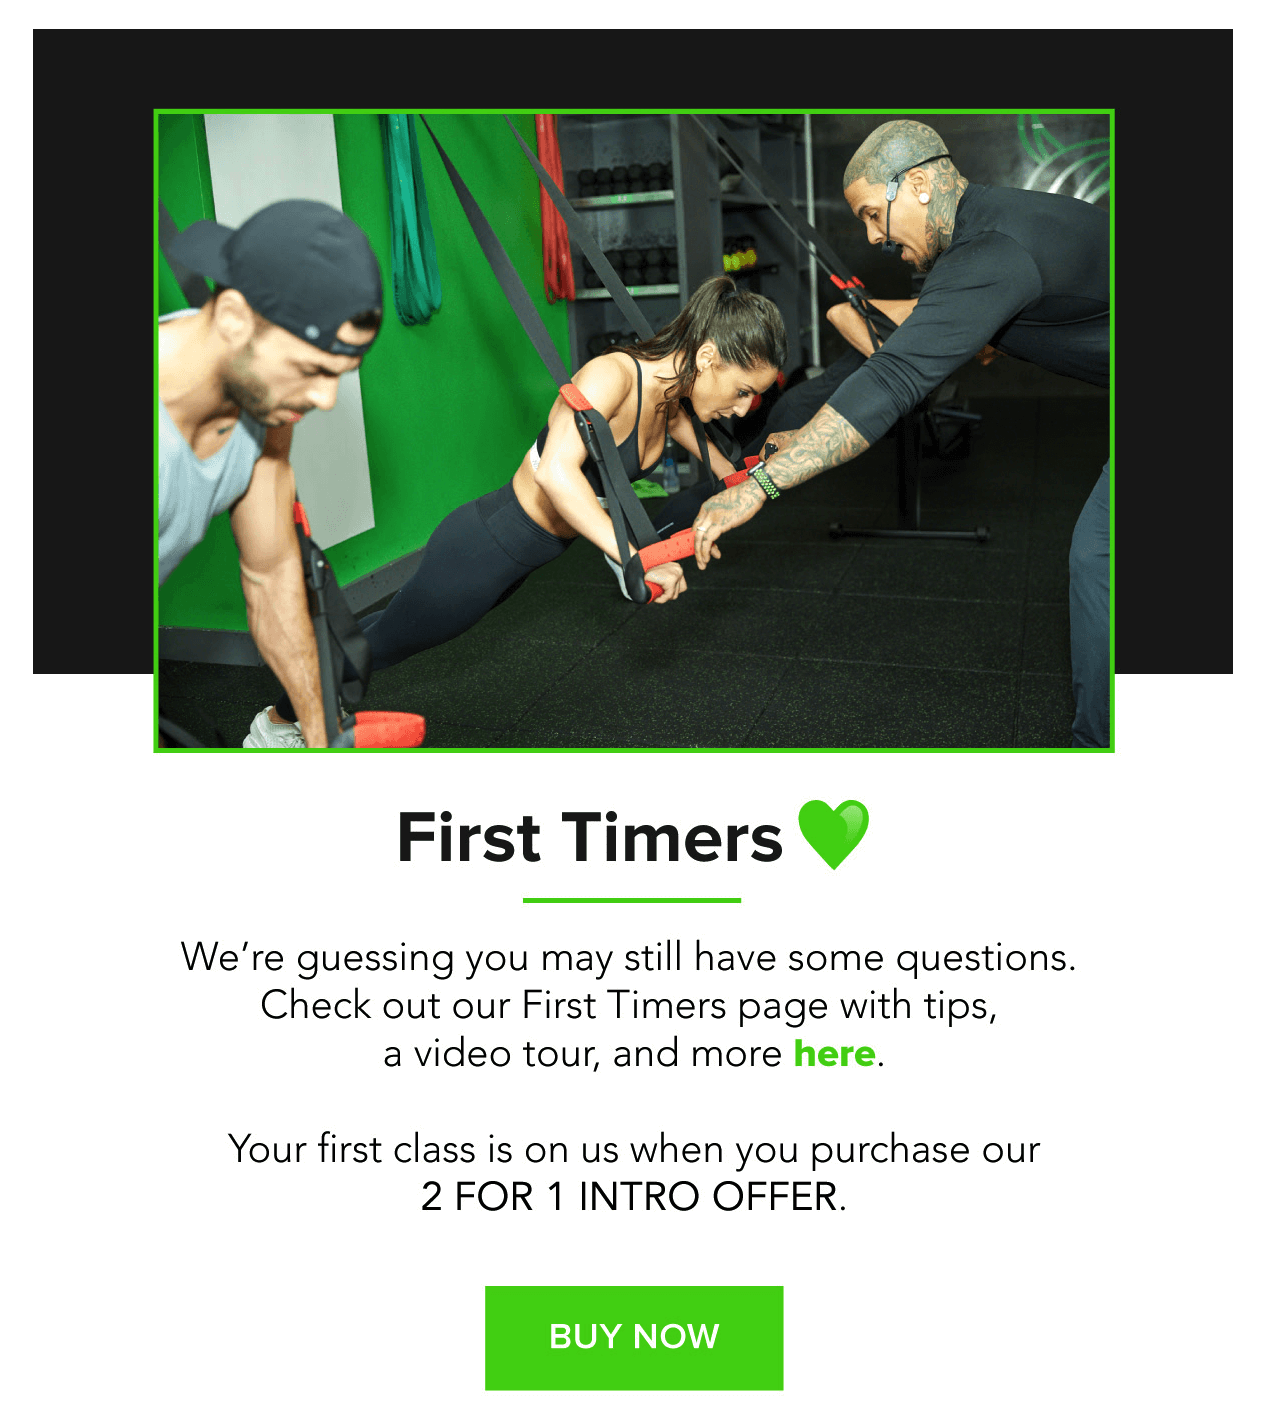 Fhitting Room welcomes new subscribers with a link to its First Timers page to ensure that they're well-educated before their first visit to the fitness studio.